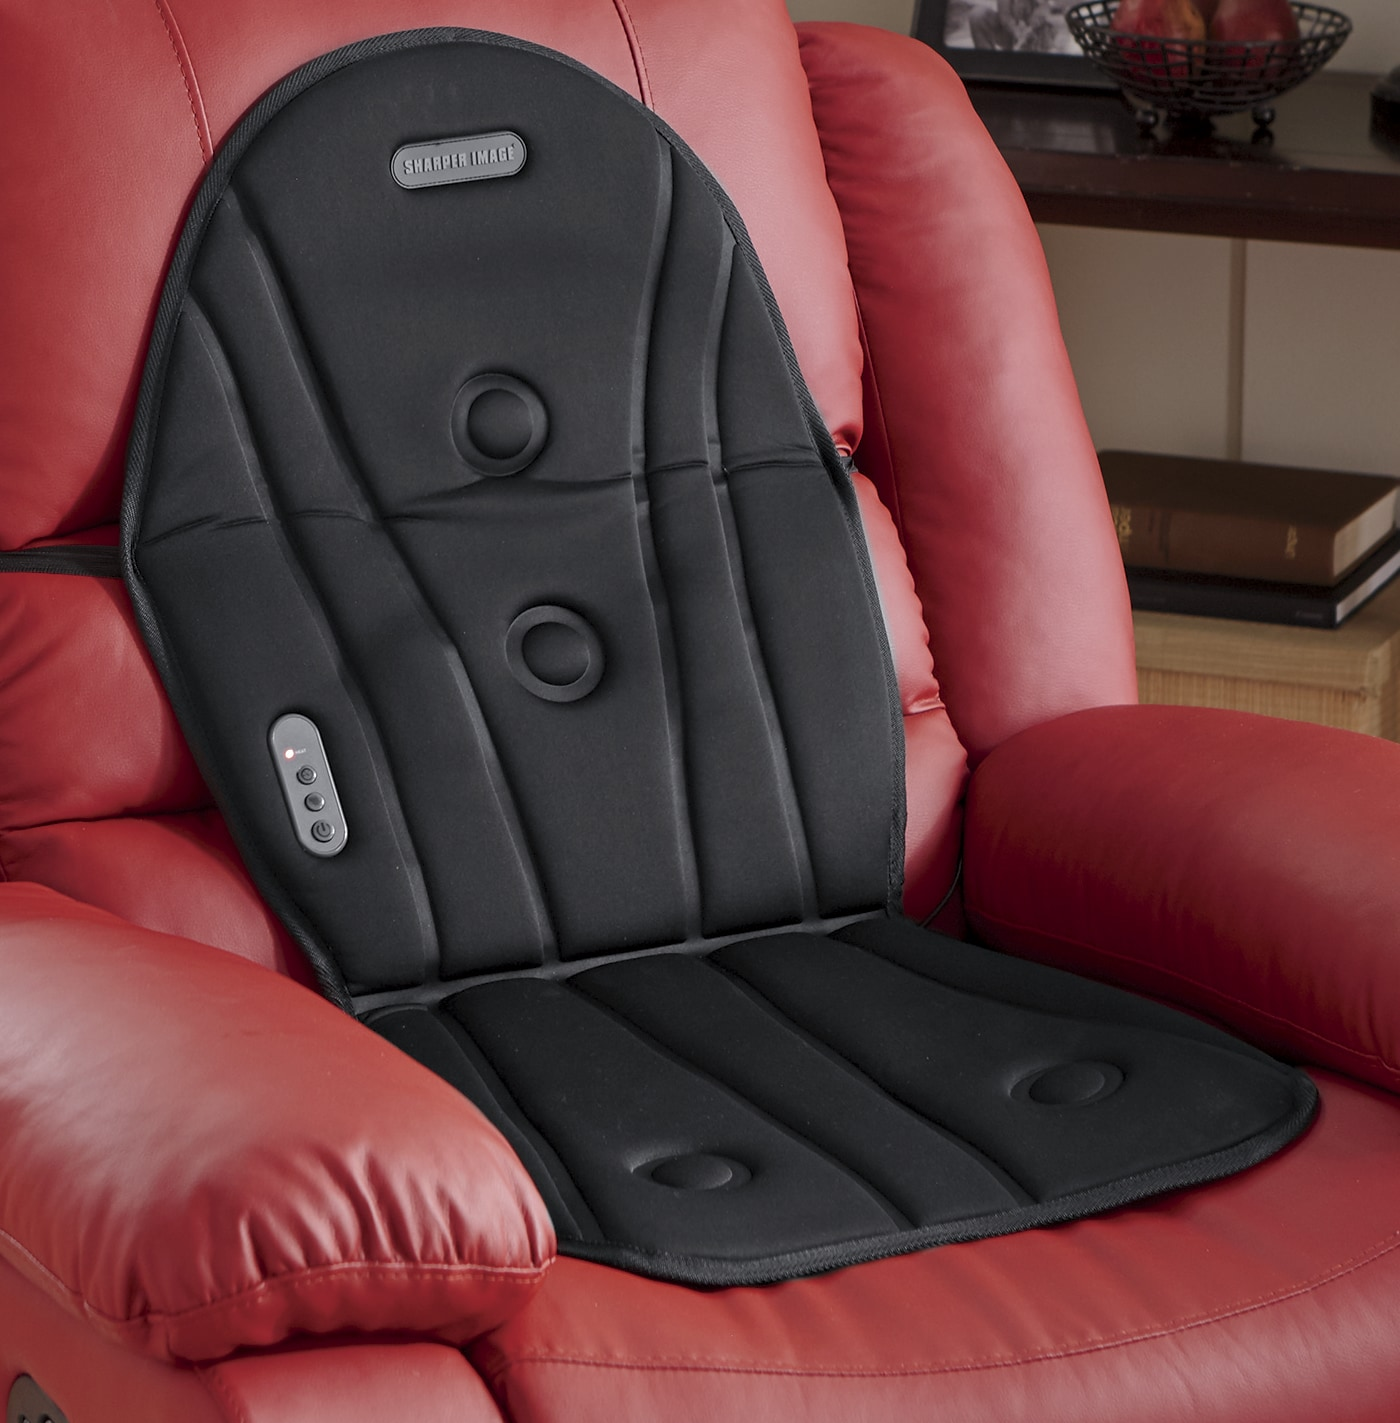 sharper image massage chairs where to buy cheap dining table and chair massager by montgomery ward